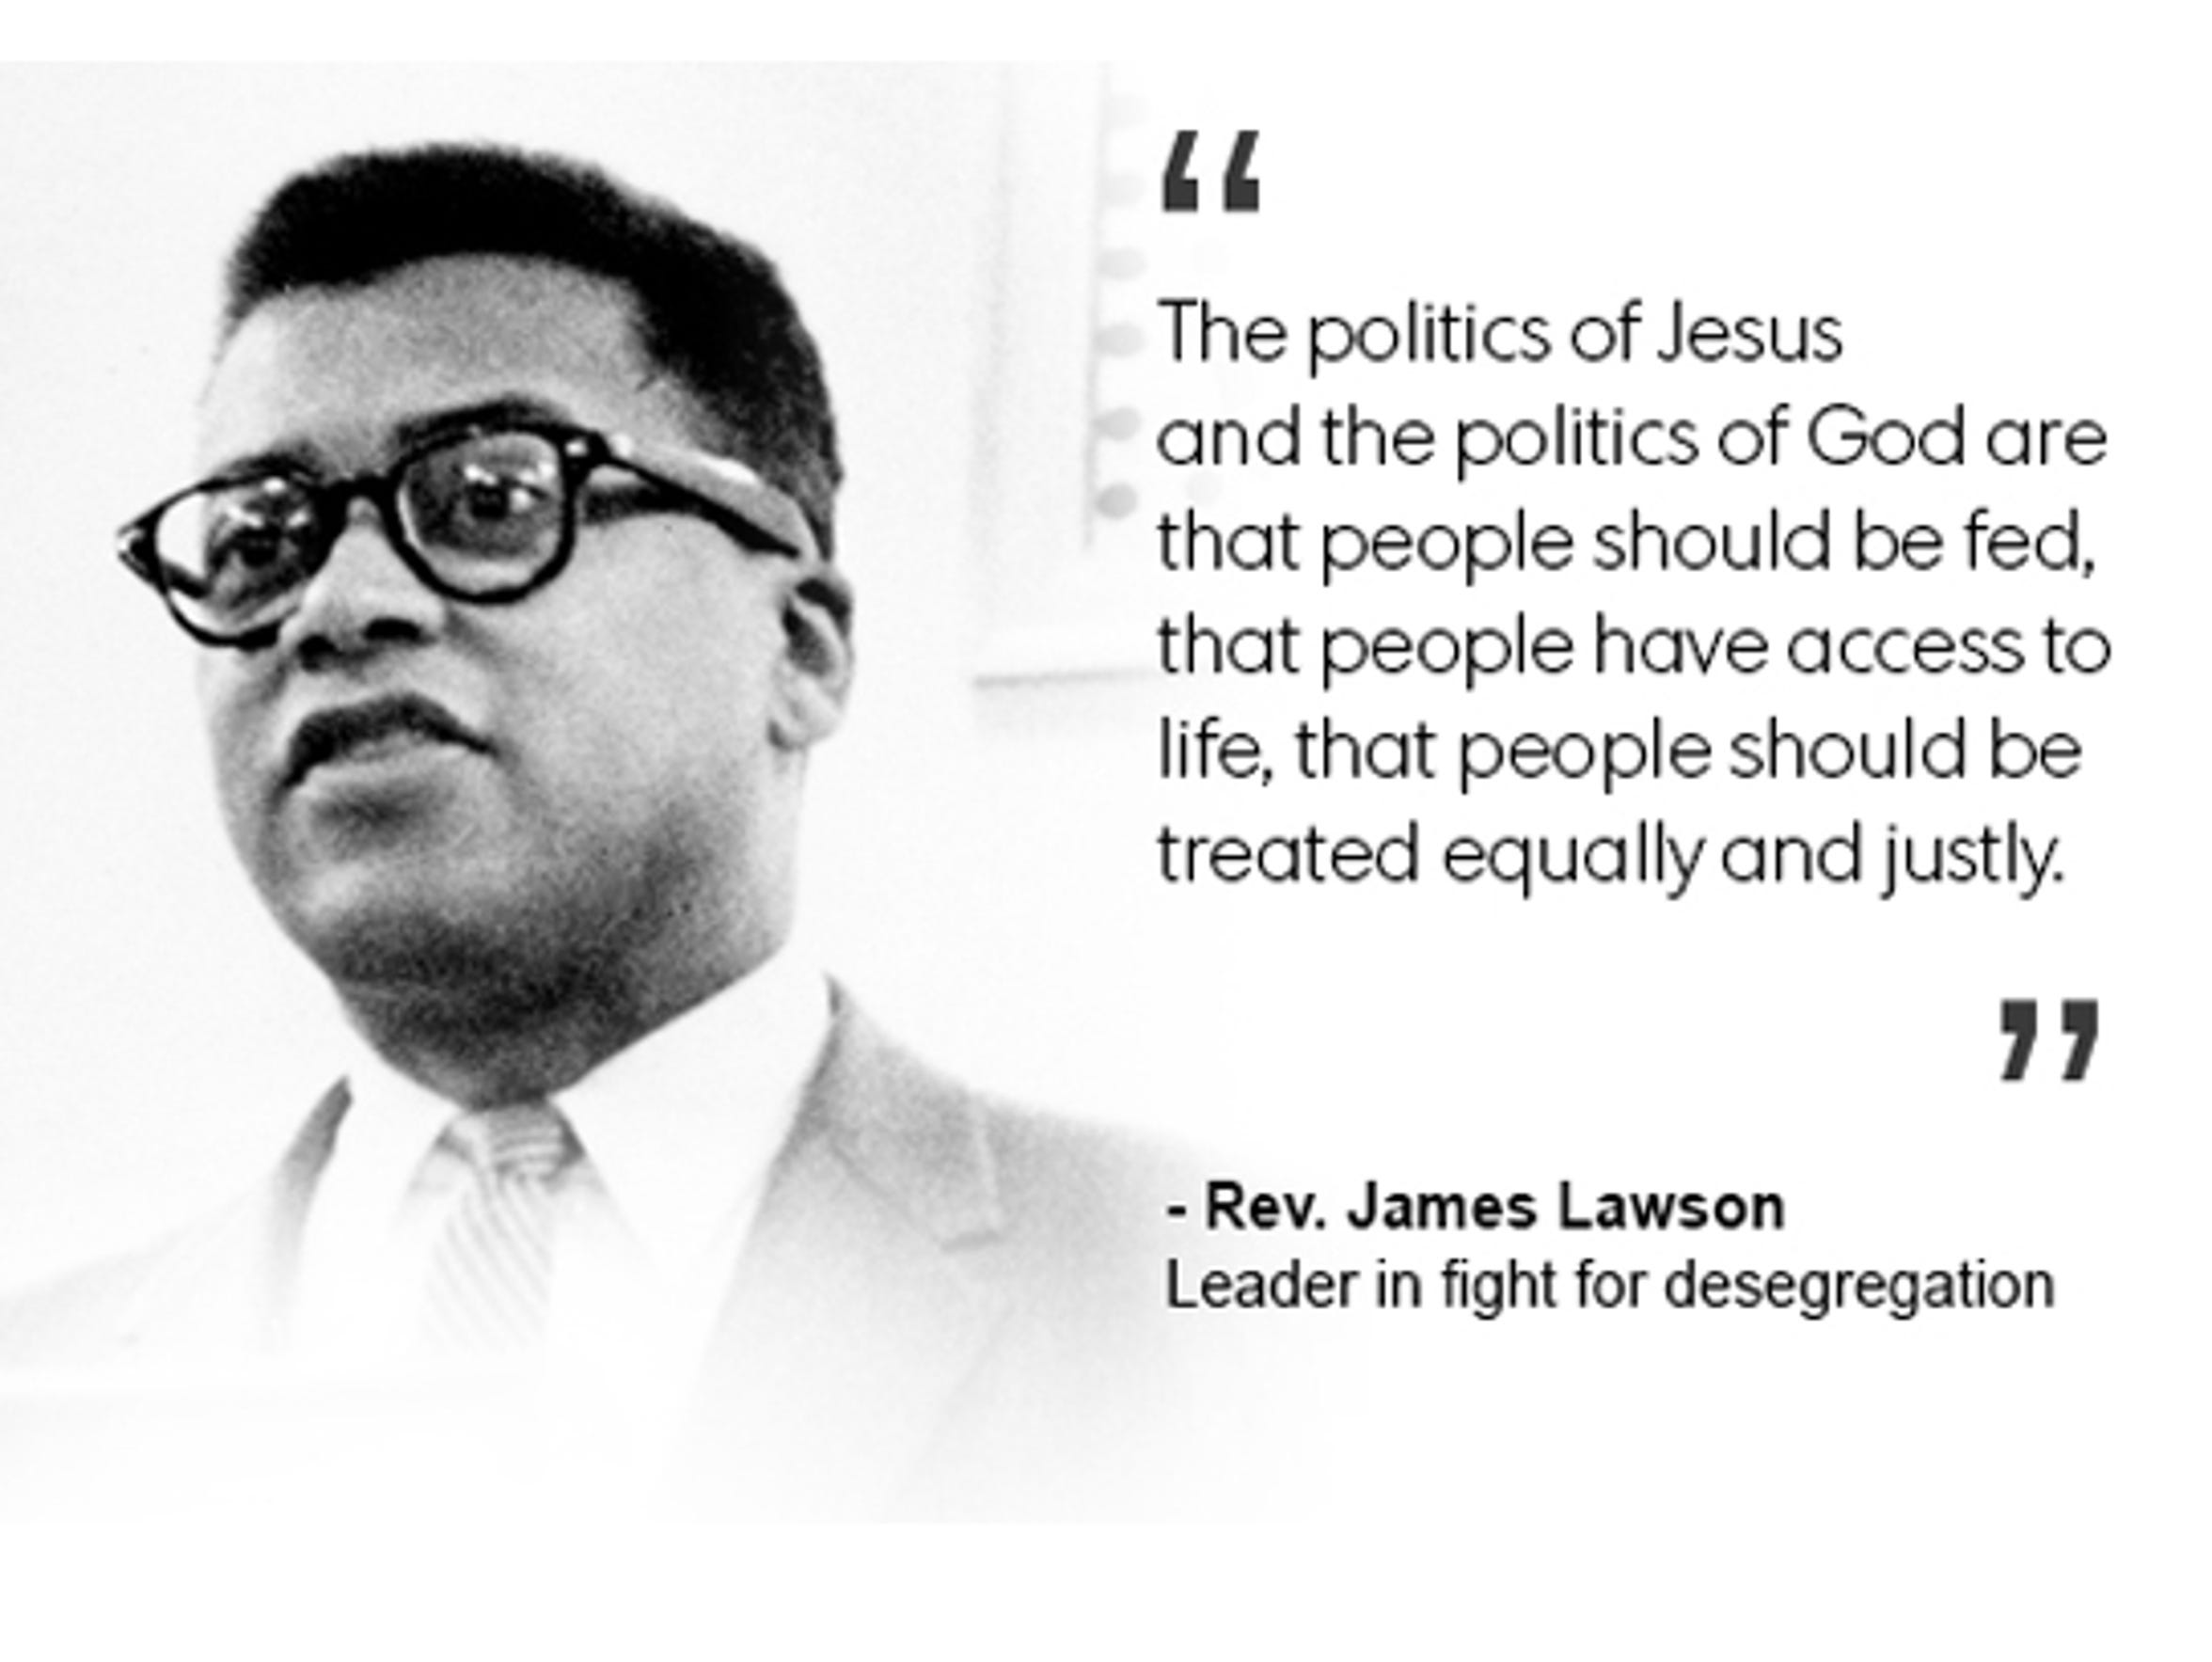 Rev. James Lawson, leader in fight for desegregation